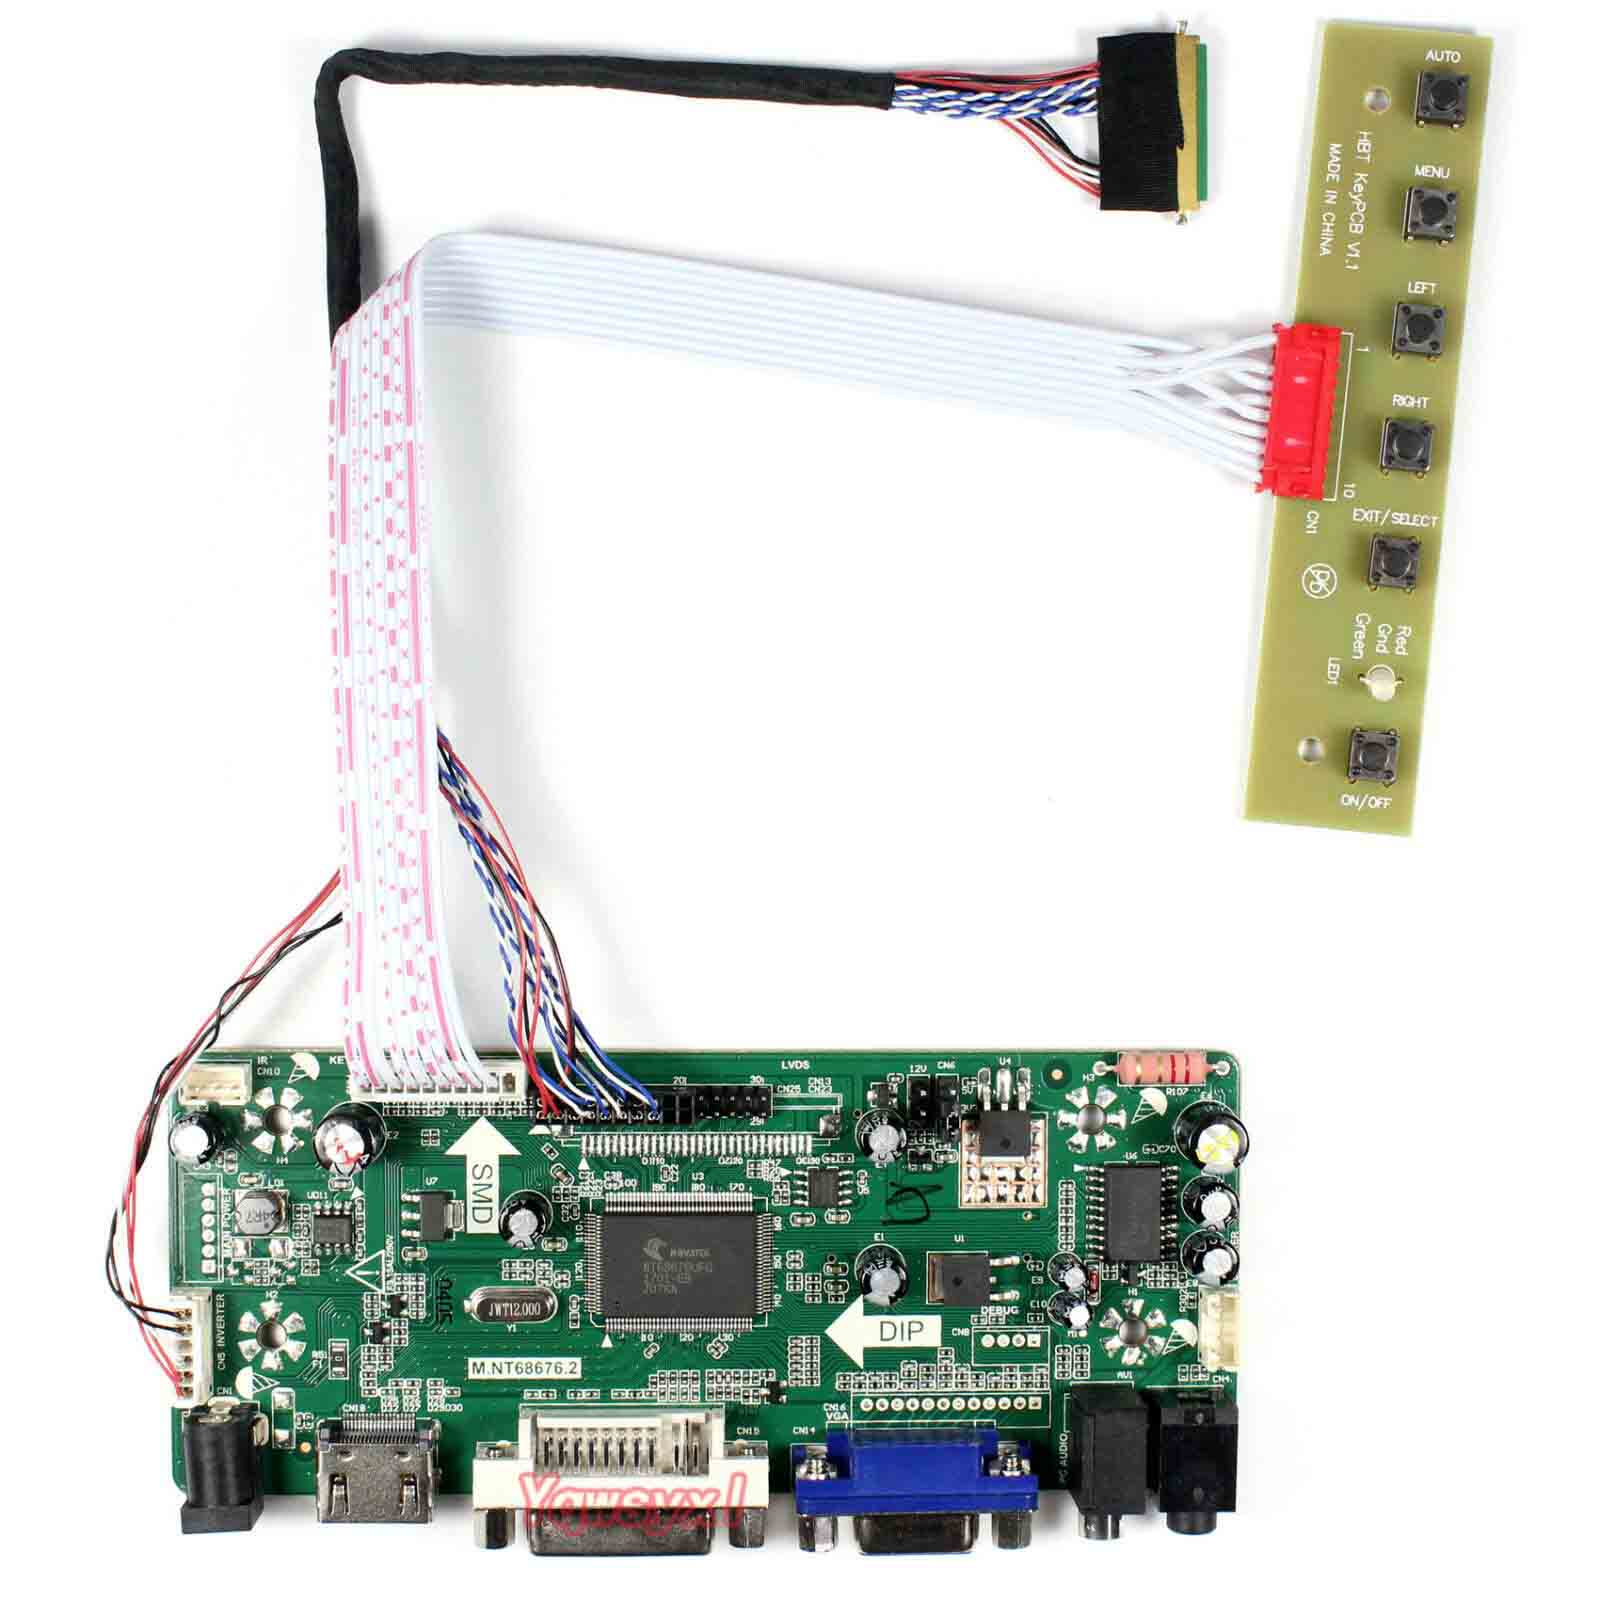 Yqwsyxl Control Board Monitor Kit For N140BGE-L32  N140BGE-L31  N140BGE-L12  HDMI+DVI+VGA LCD LED Screen Controller Board Driver